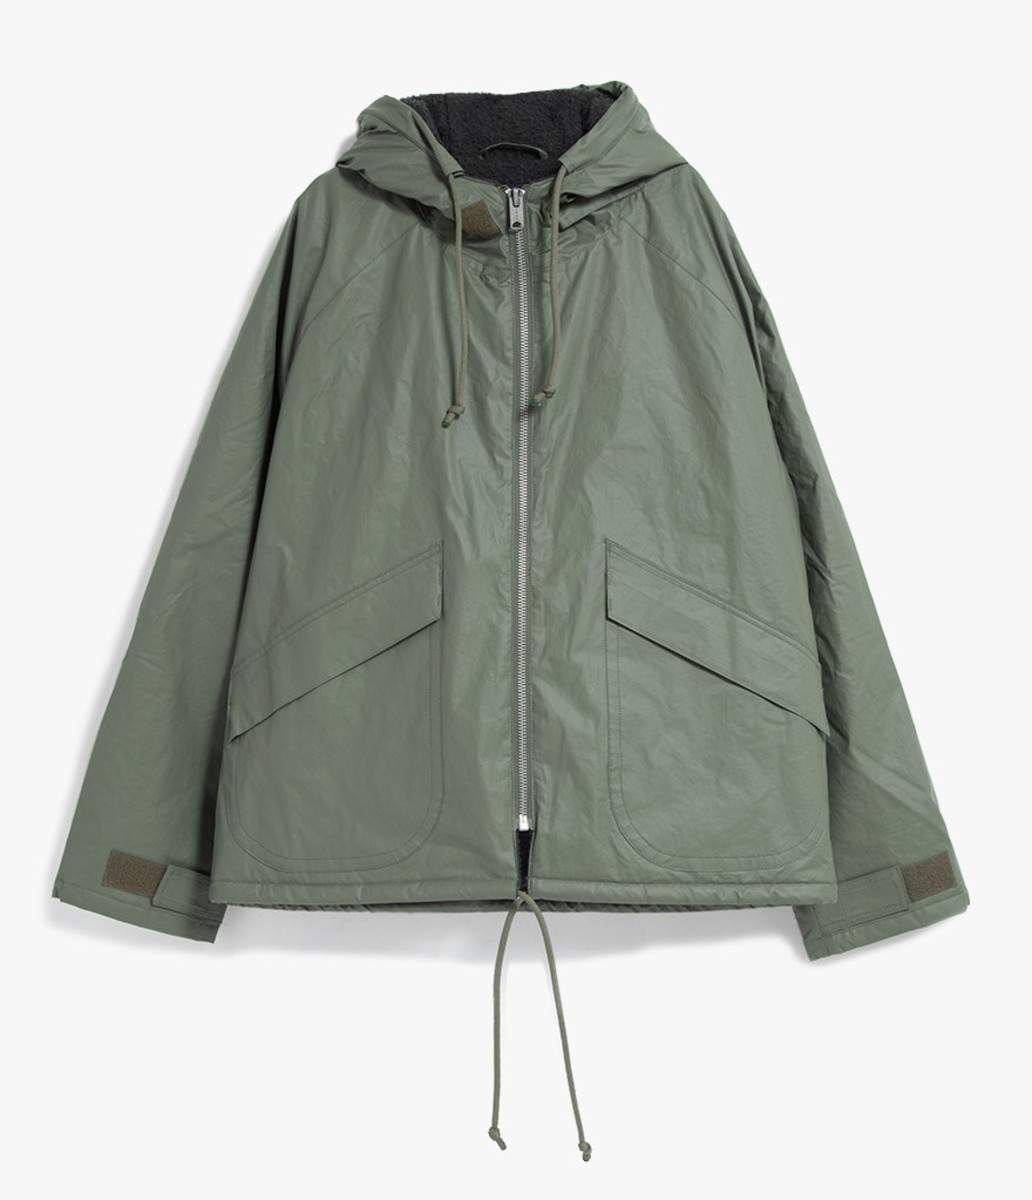 yeezy-season-3-waxed-cotton-anorak.jpg